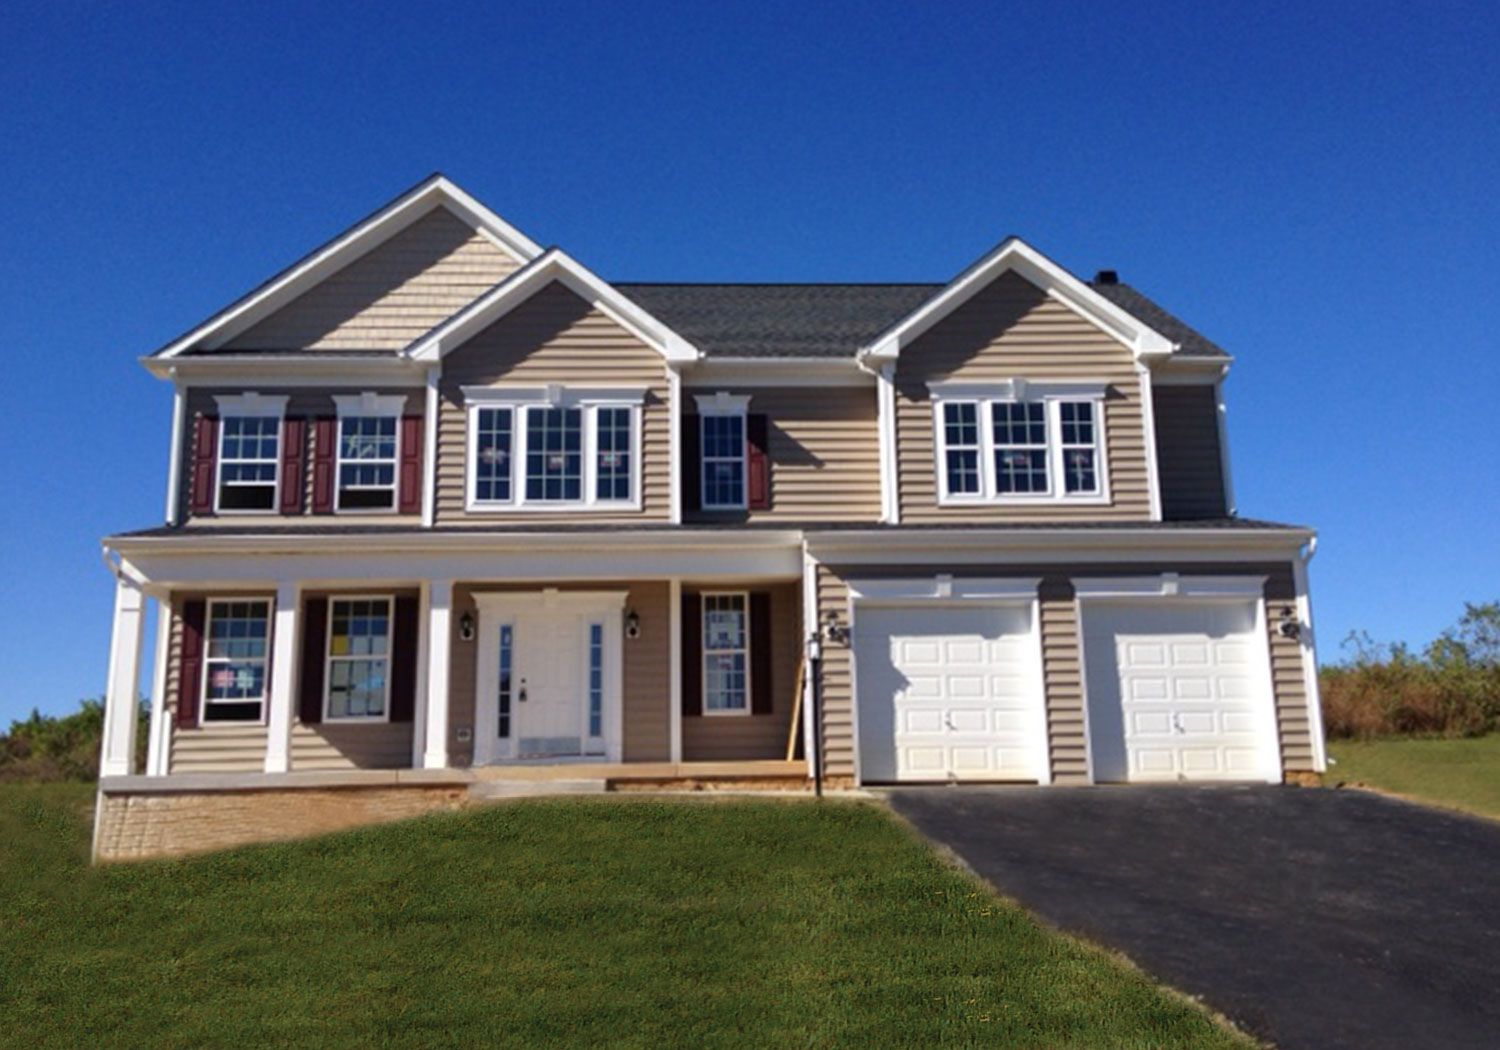 New homes harpers ferry wv houzz review for Wv home builders